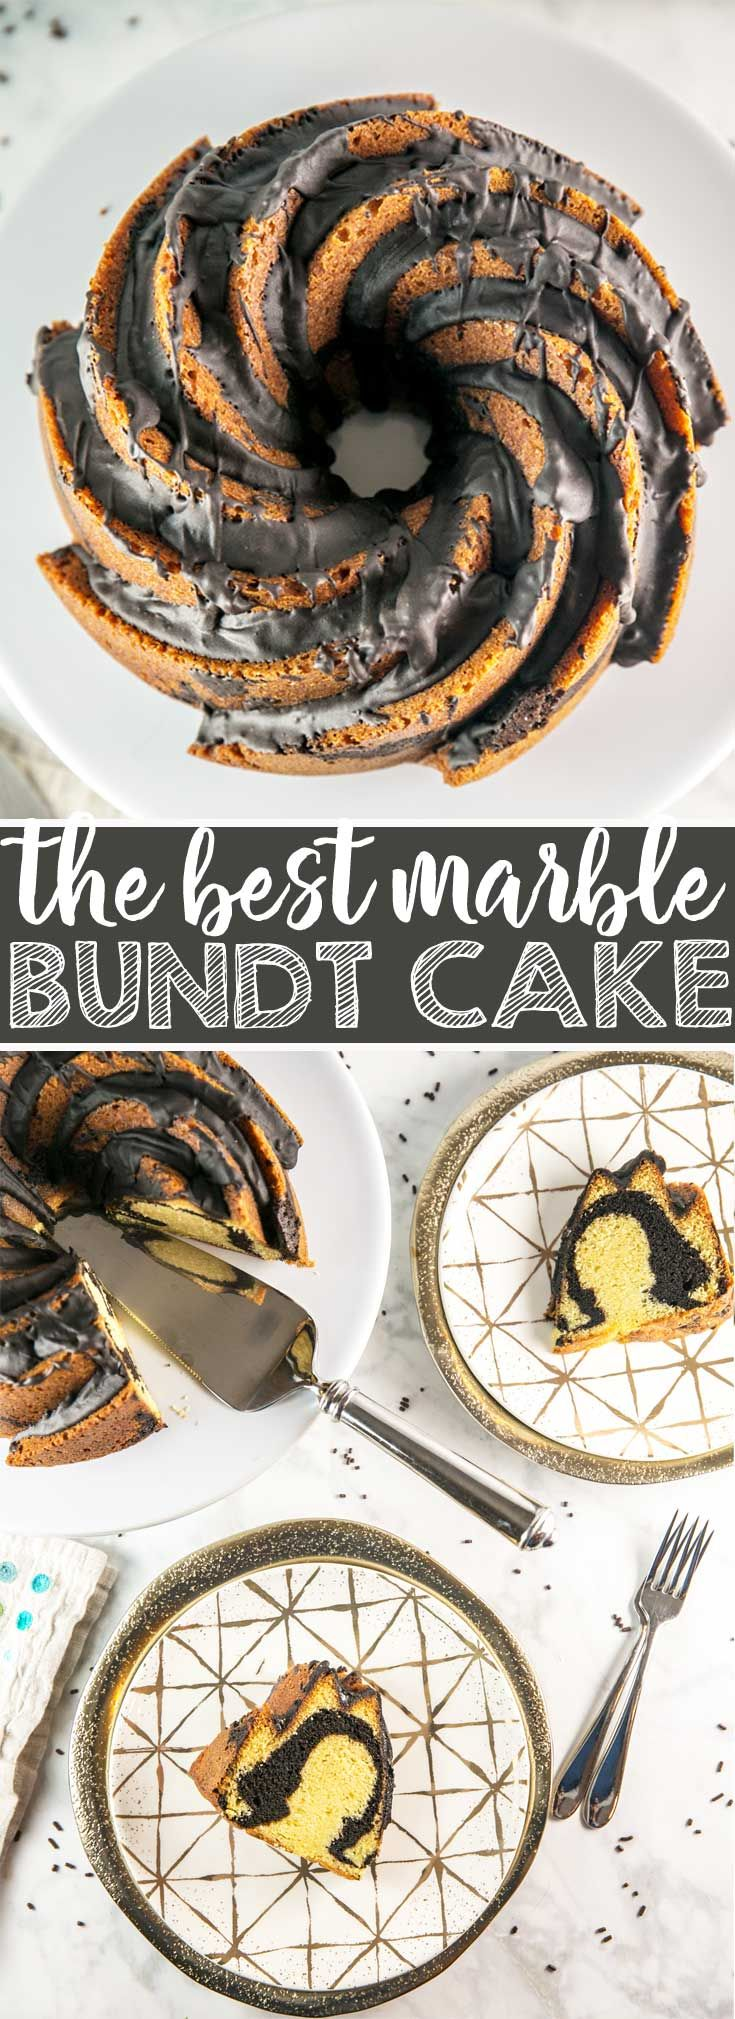 Best Marble Bundt Cake: the best of both worlds, boasting a strong vanilla and chocolate flavor, without the dry and crumbly texture of most marble cakes.  The best! #bundtcake #cake #marblecake  via @bnsnbrnrbakery